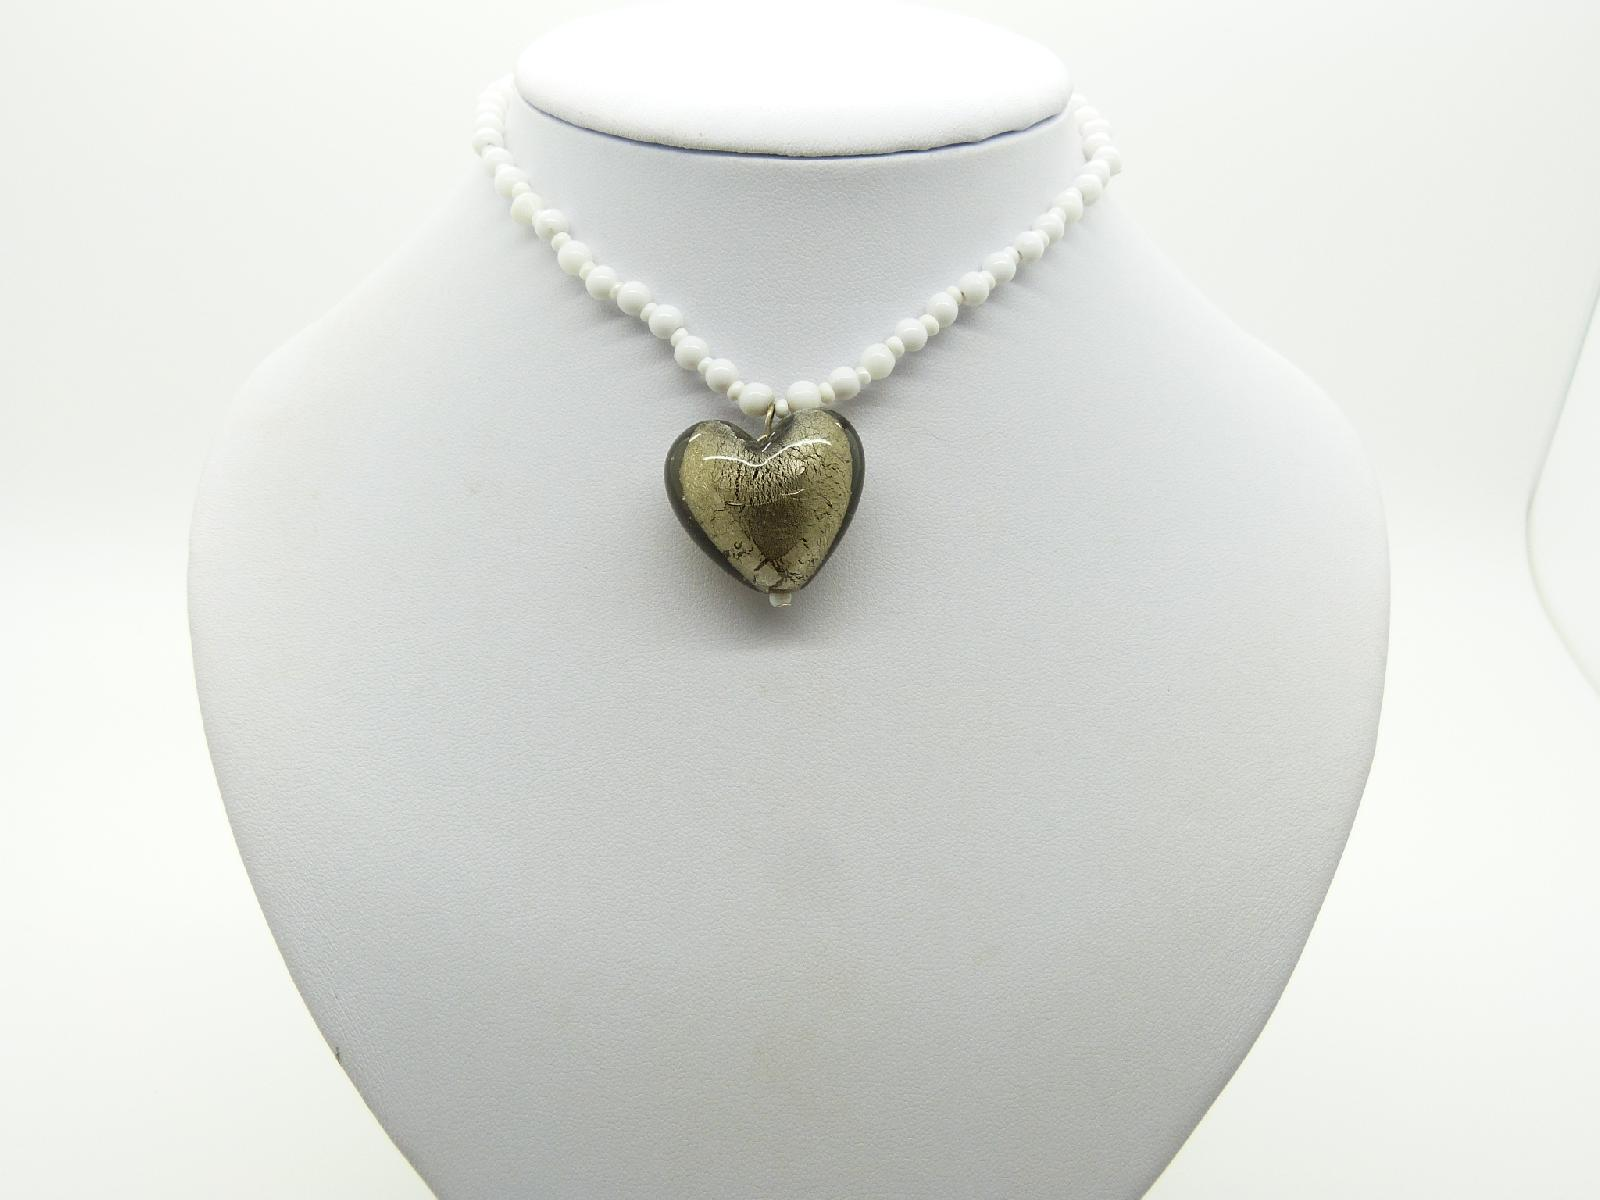 £8.00 - Vintage Redesigned White Glass Bead Necklace Murano Glass Heart Pendant